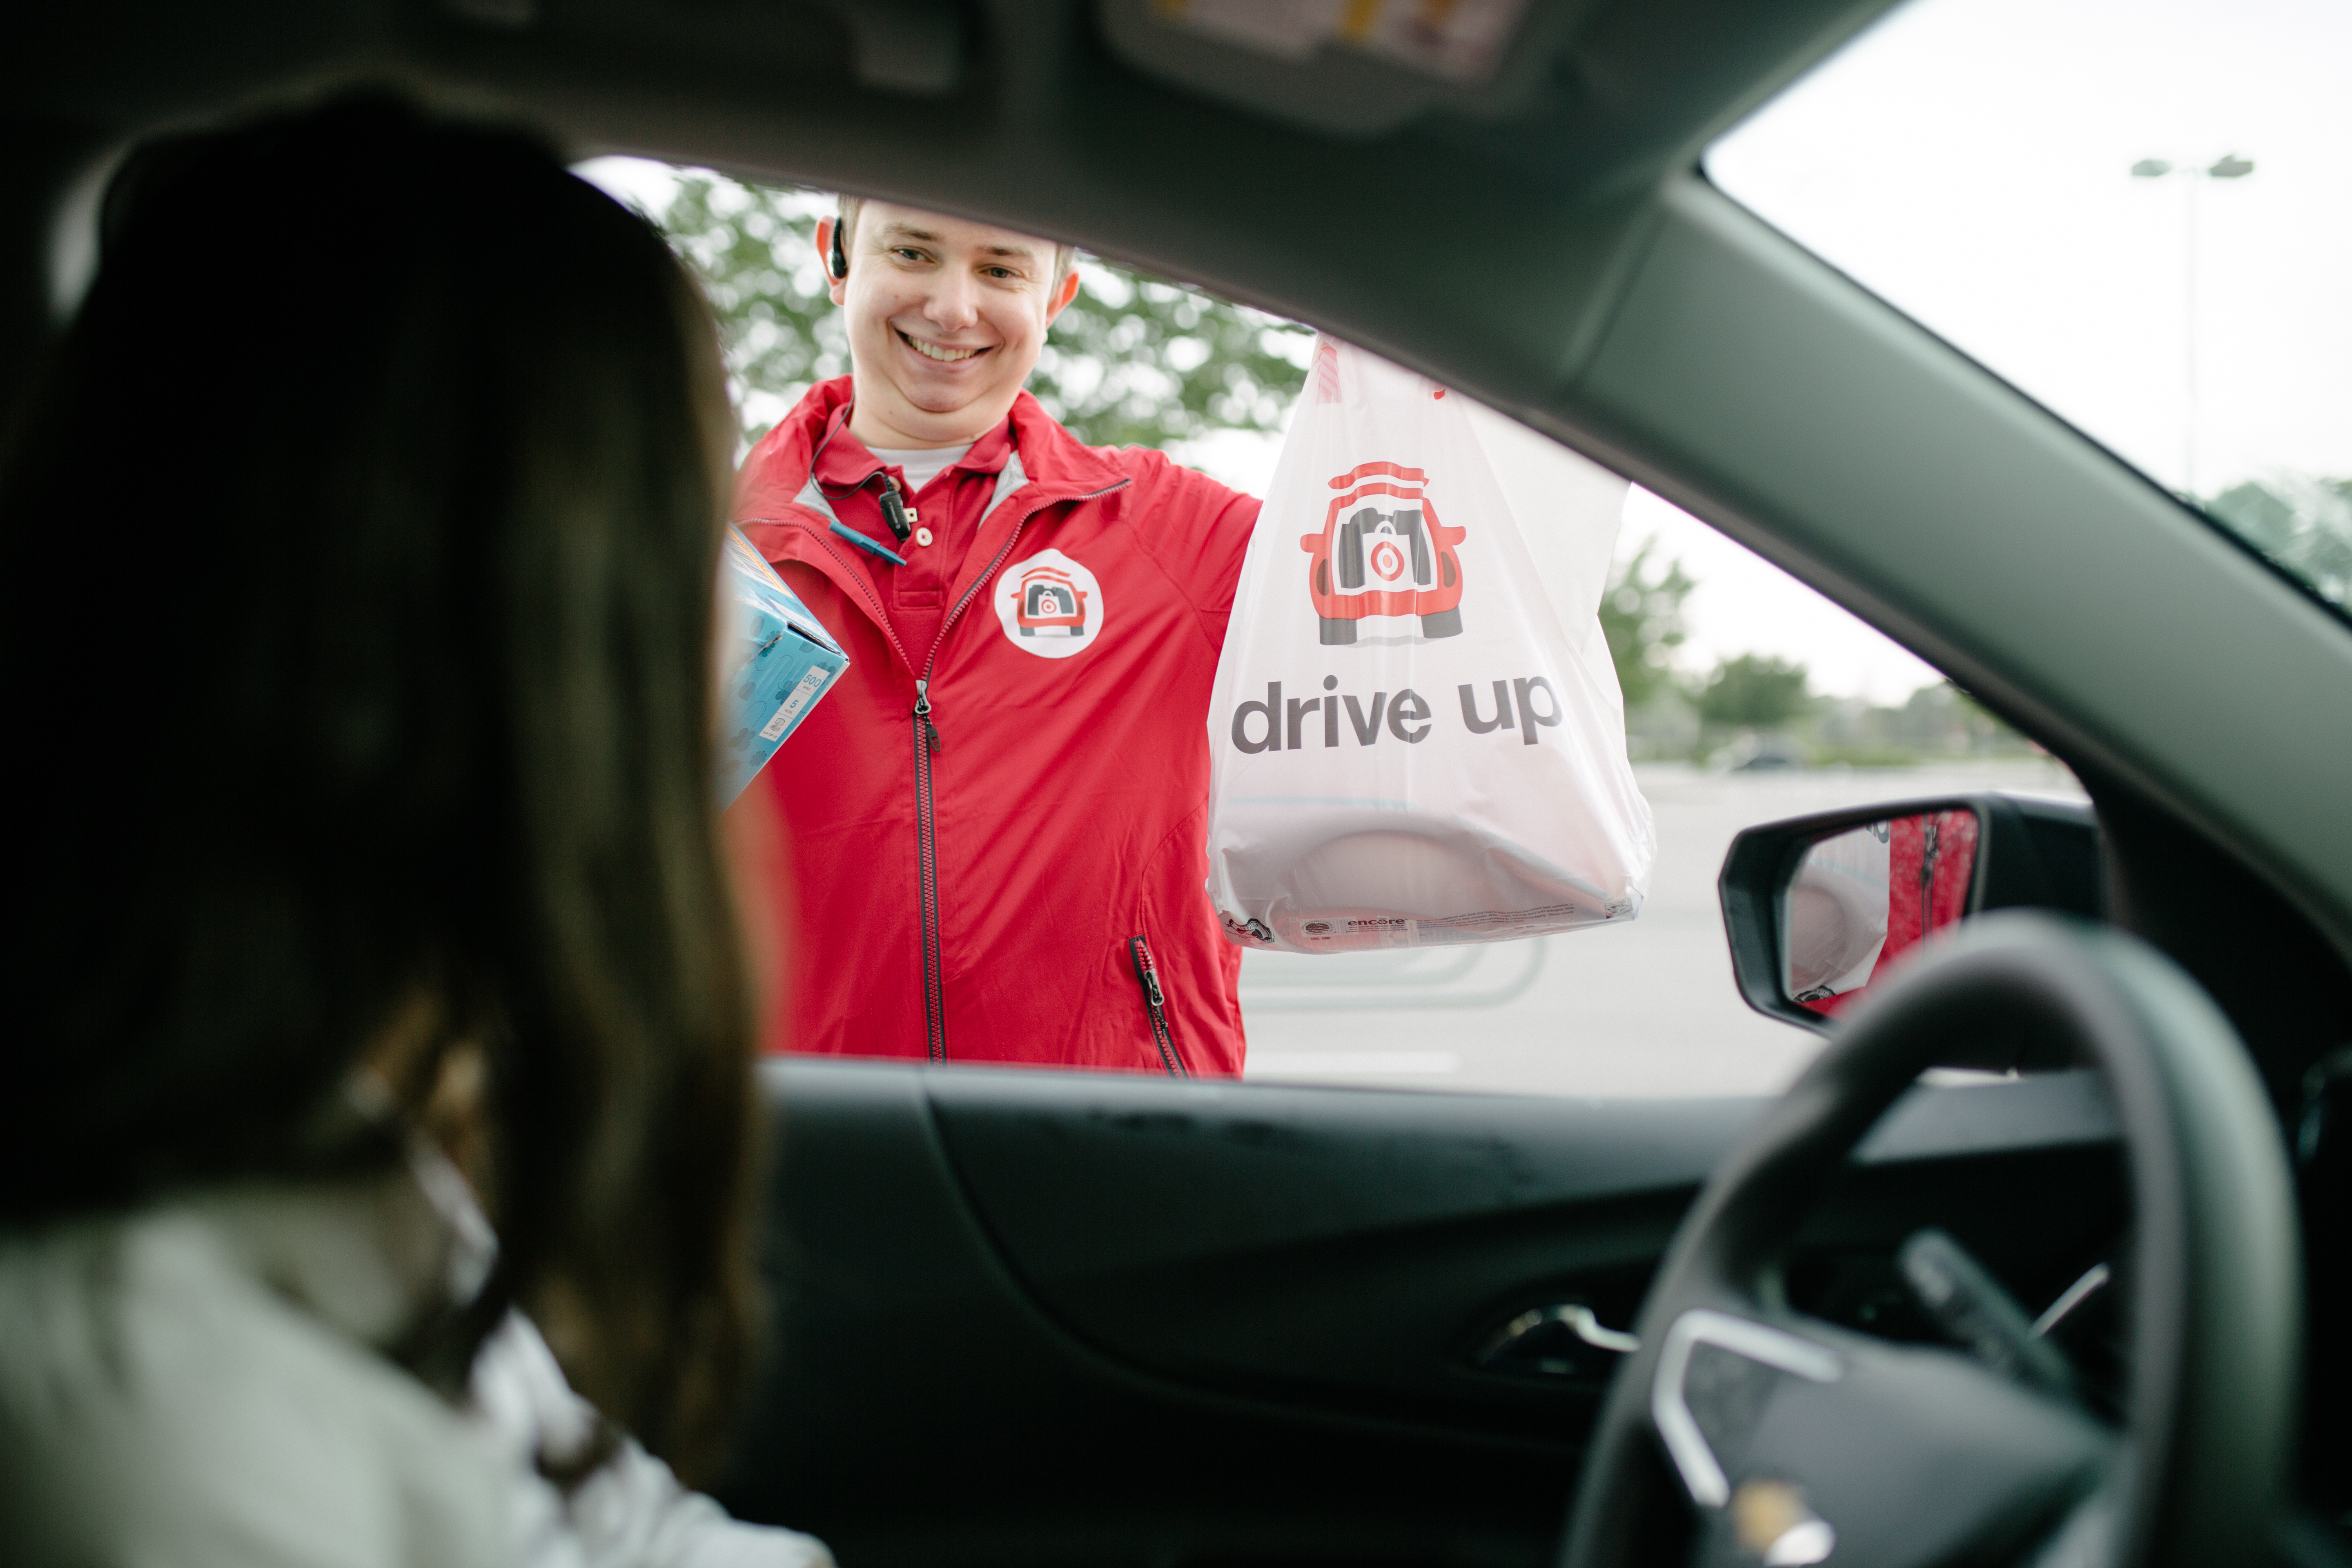 Target Expands Its Drive Up Service To 270 Stores Across Florida Texas And The Southeast Techcrunch